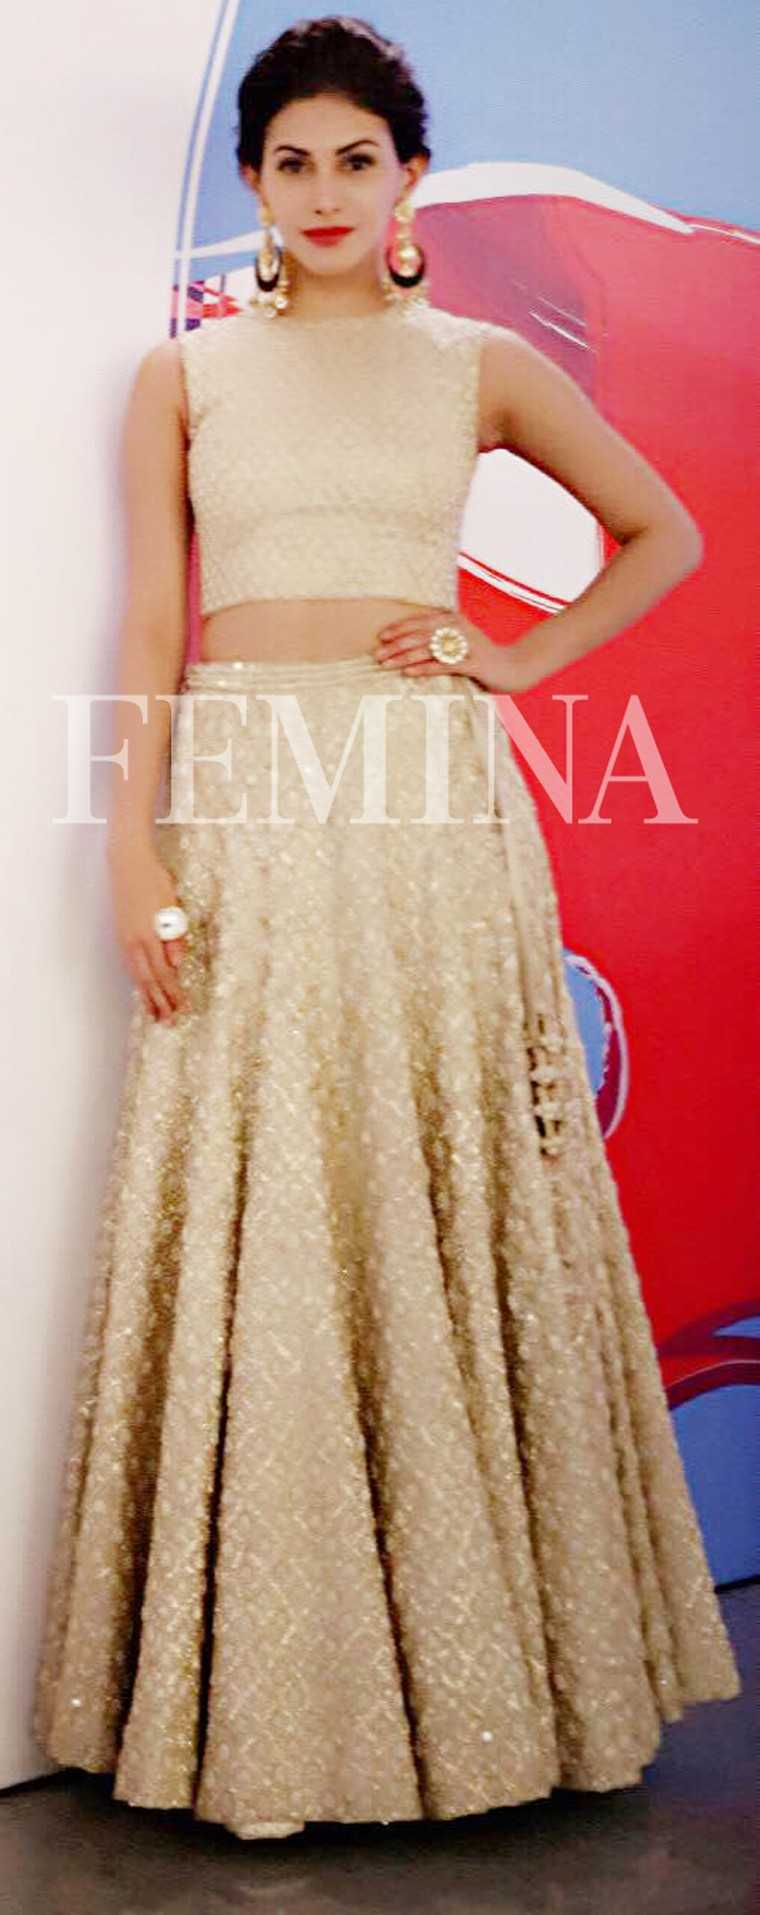 Amyra Dastur: Eggnog  We love Amyra's richly embellished lehenga choli. She dresses it up with a red lip and an elegant updo.